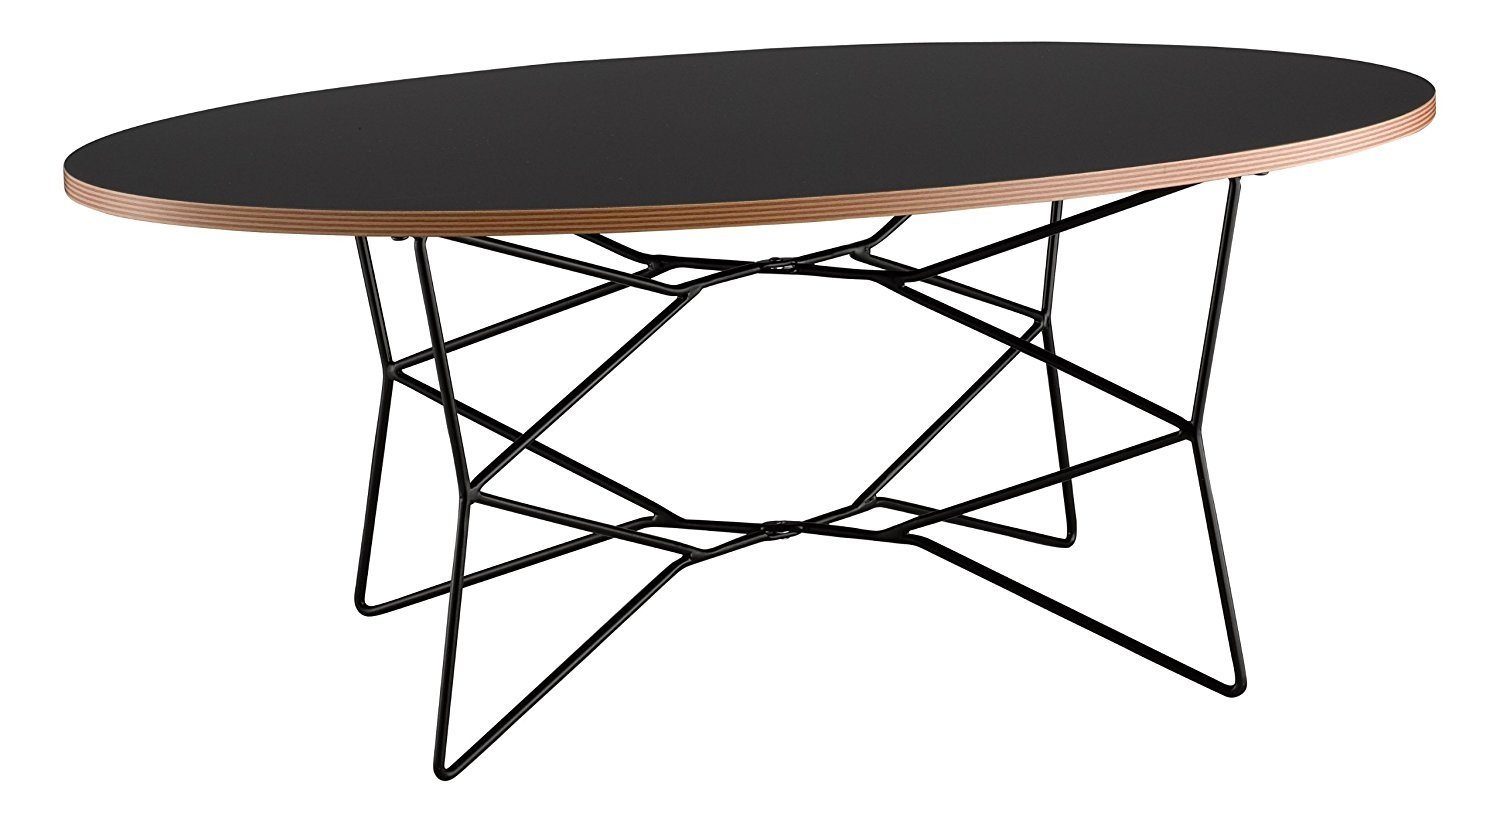 Adesso WK2273-01 Network Coffee Table by Adesso (Home Decor)